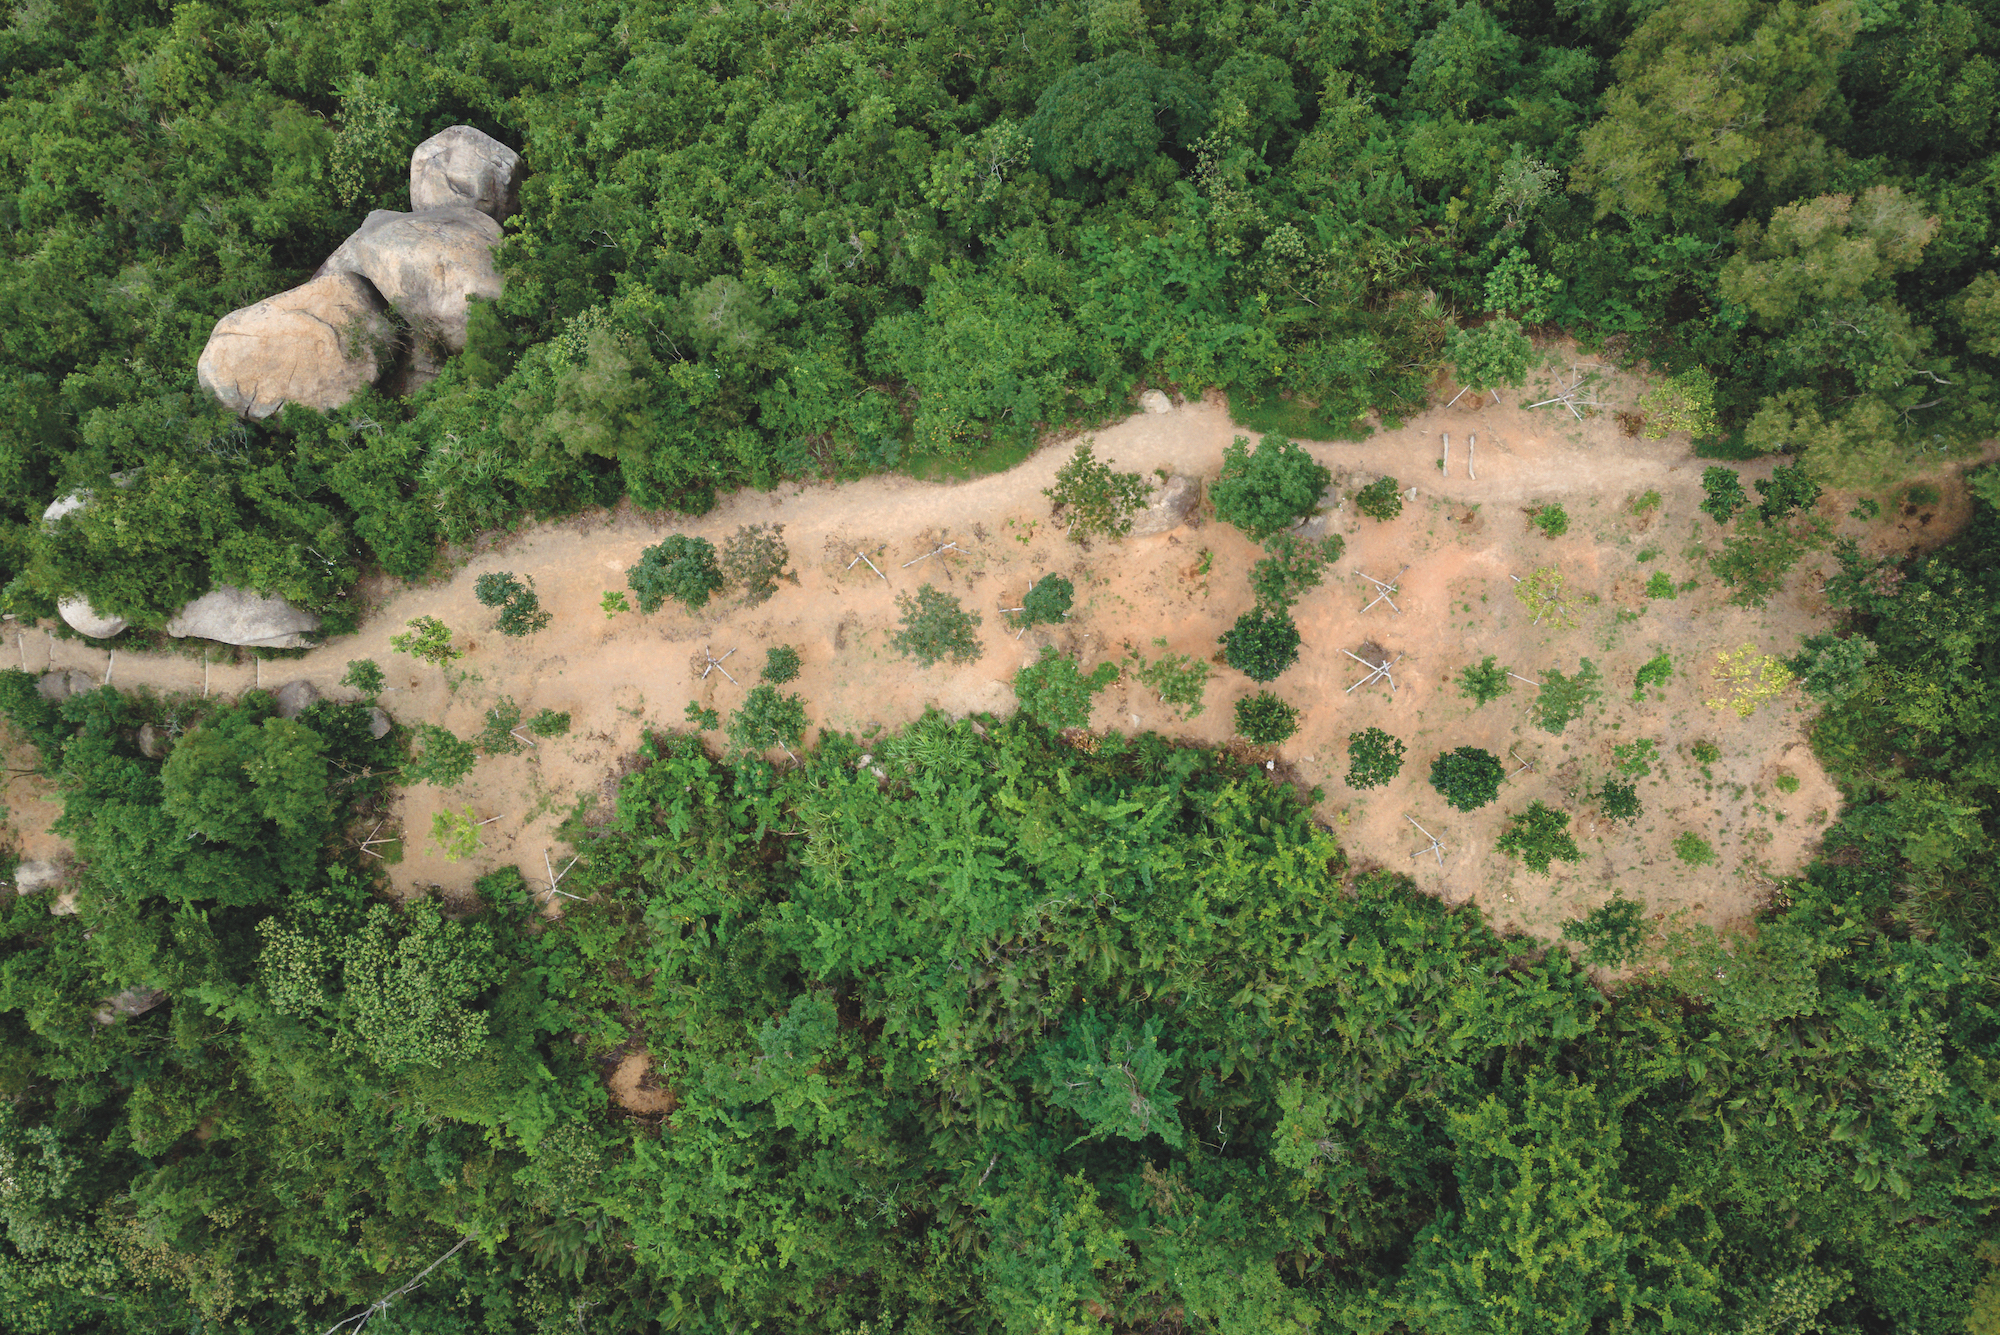 Aerial view of one of the spots IAM replanted trees near the A-Ma Temple in Coloane